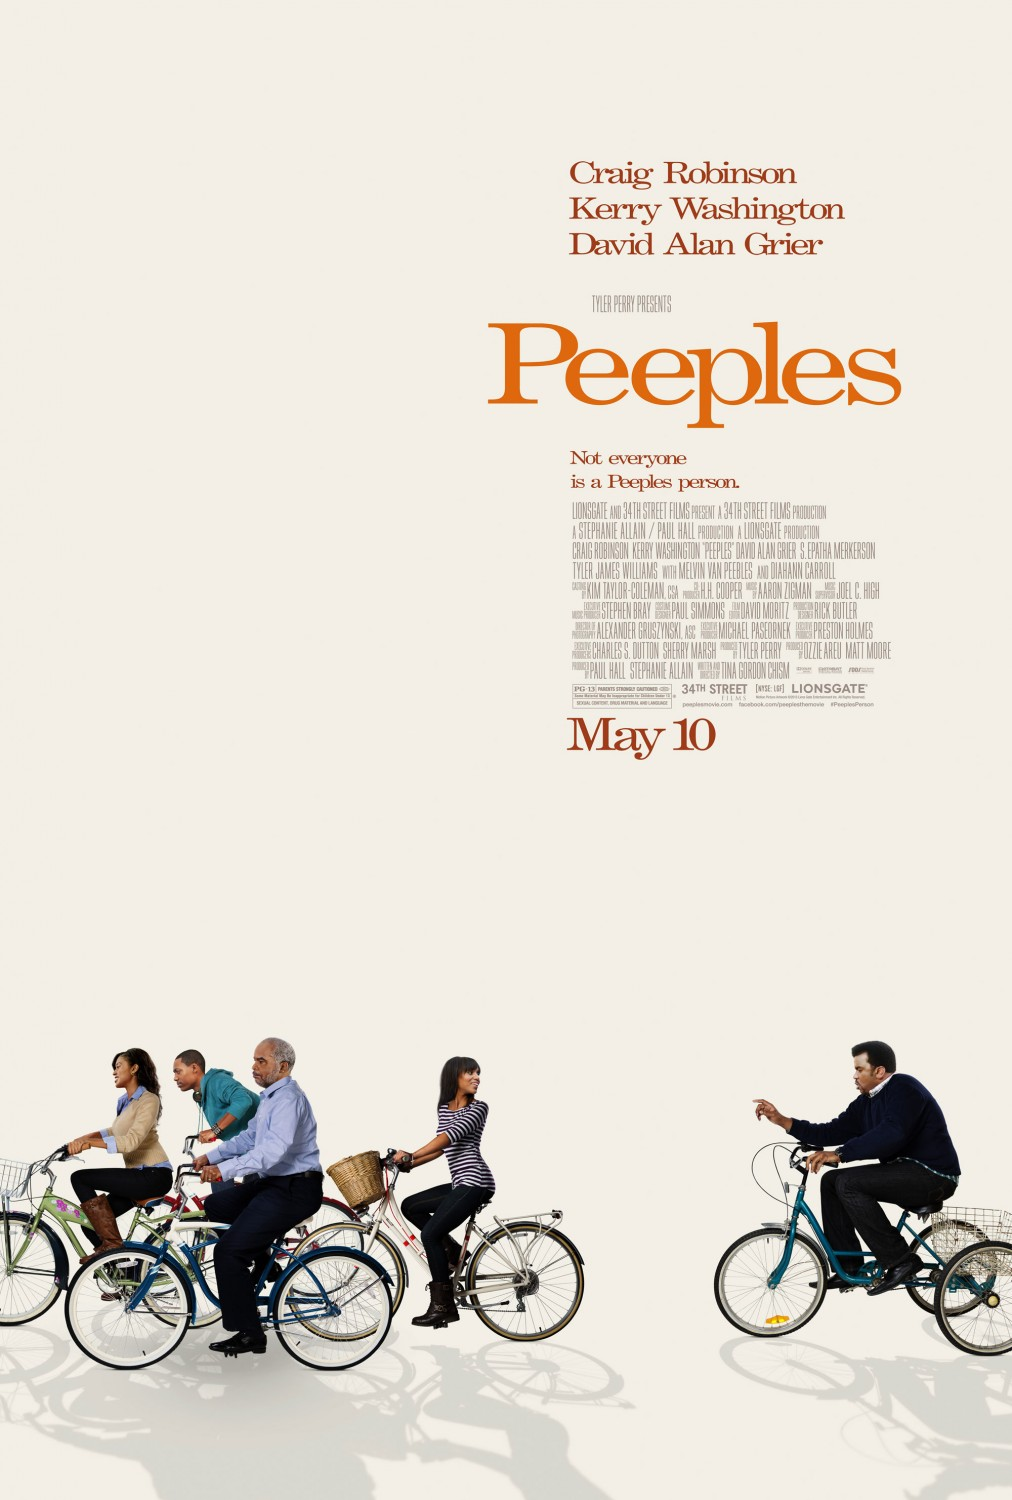 Watch Peeples (2013) Full Movie on FMovies.to